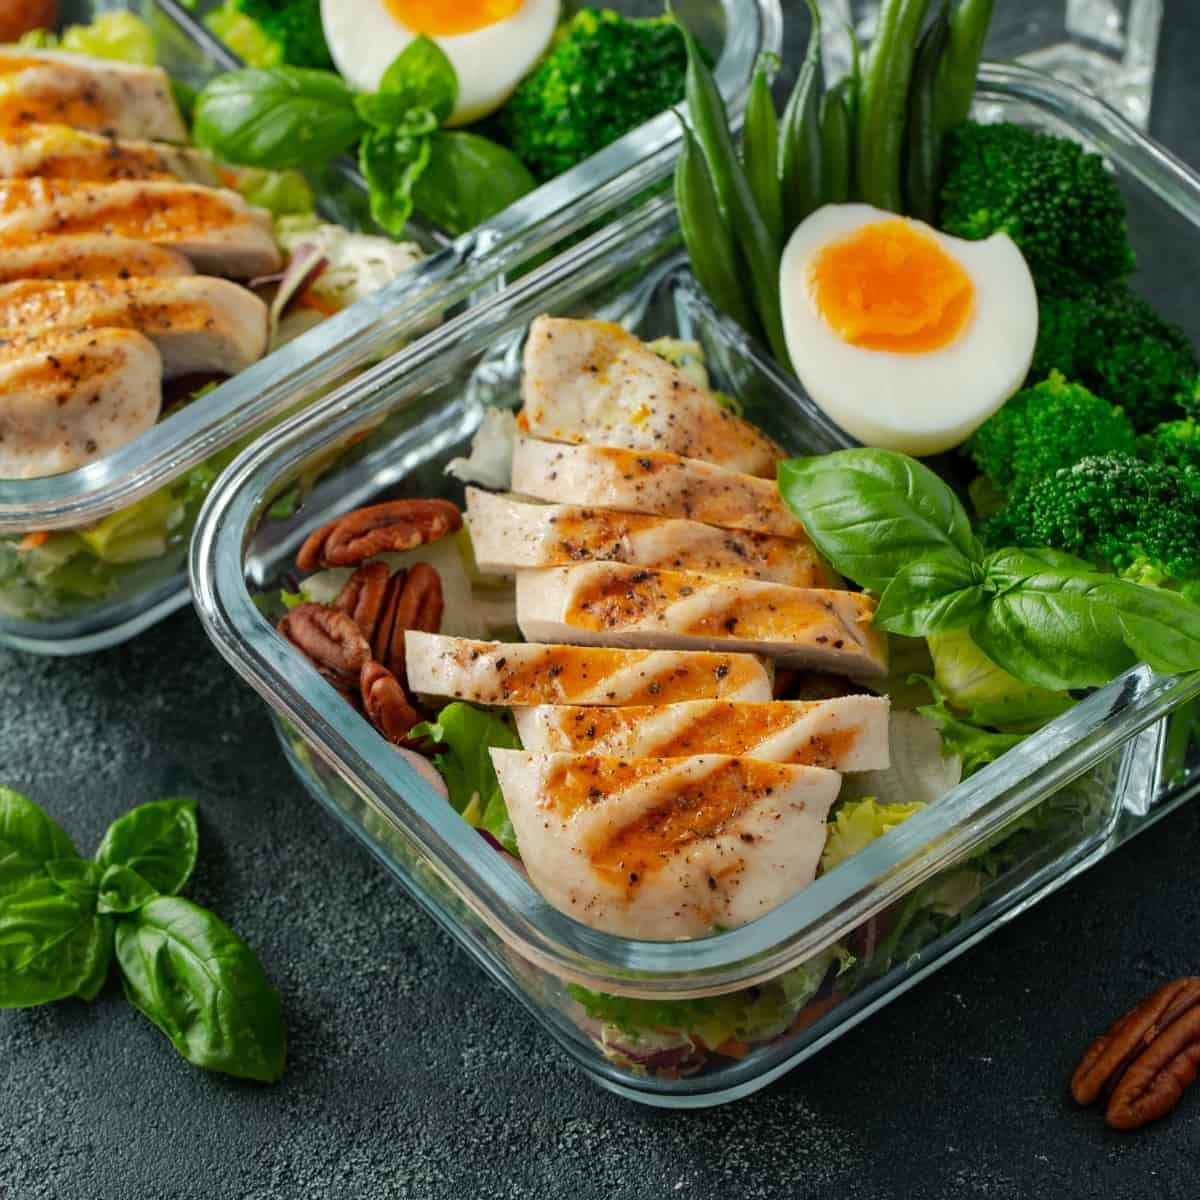 meal planning ideas using leftovers